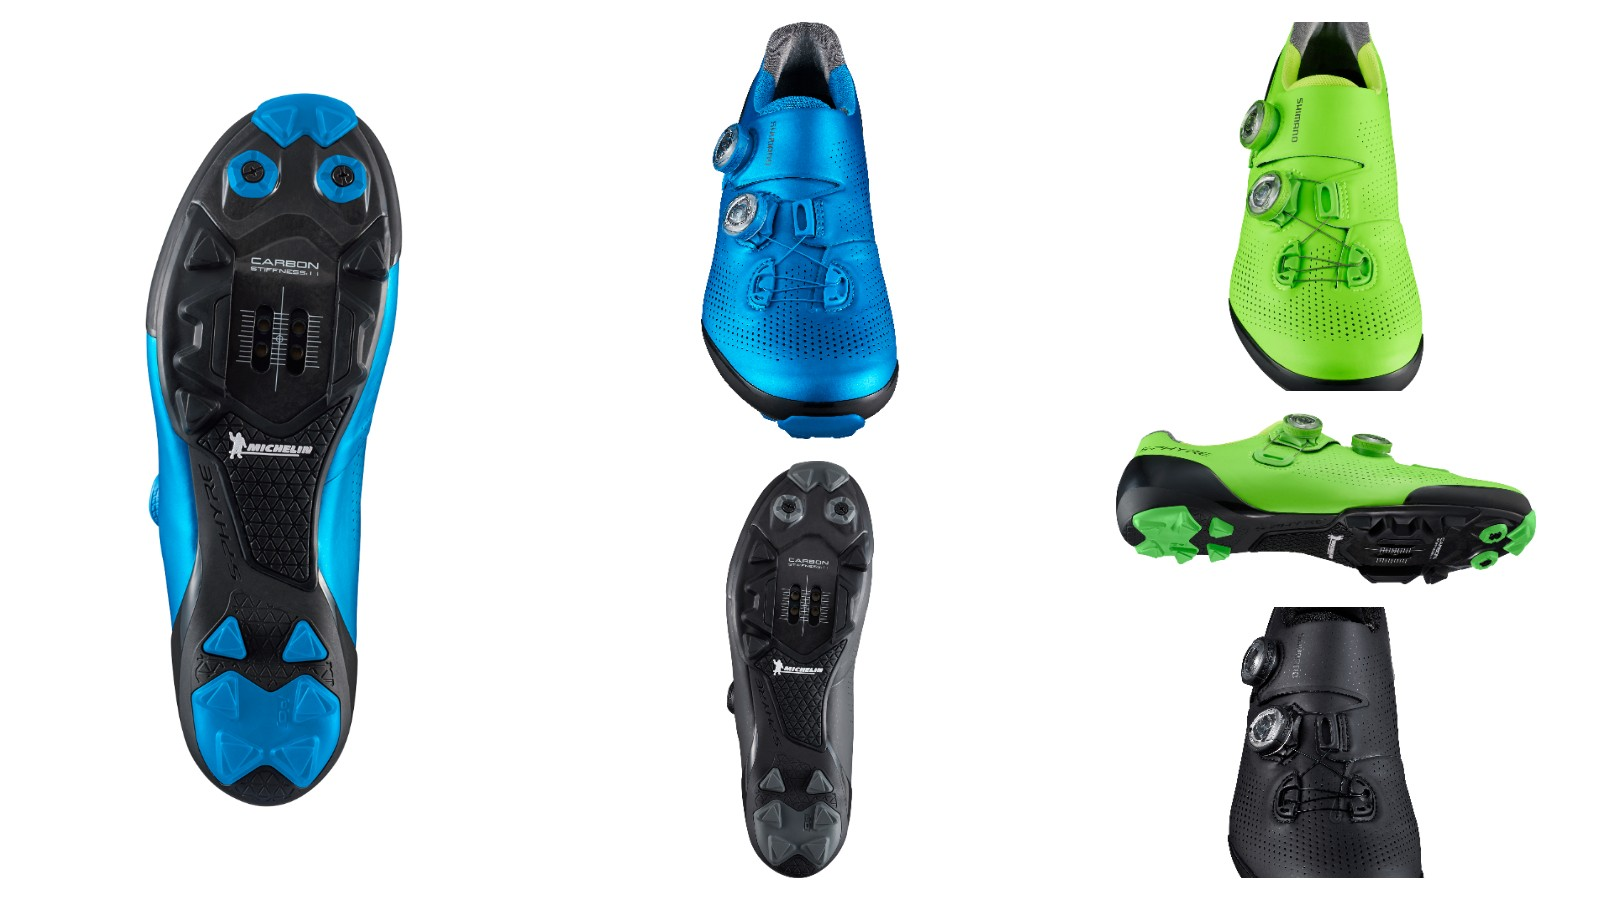 The S-Phyre XC9 improvements include a better fit, more breathability, and increased durability